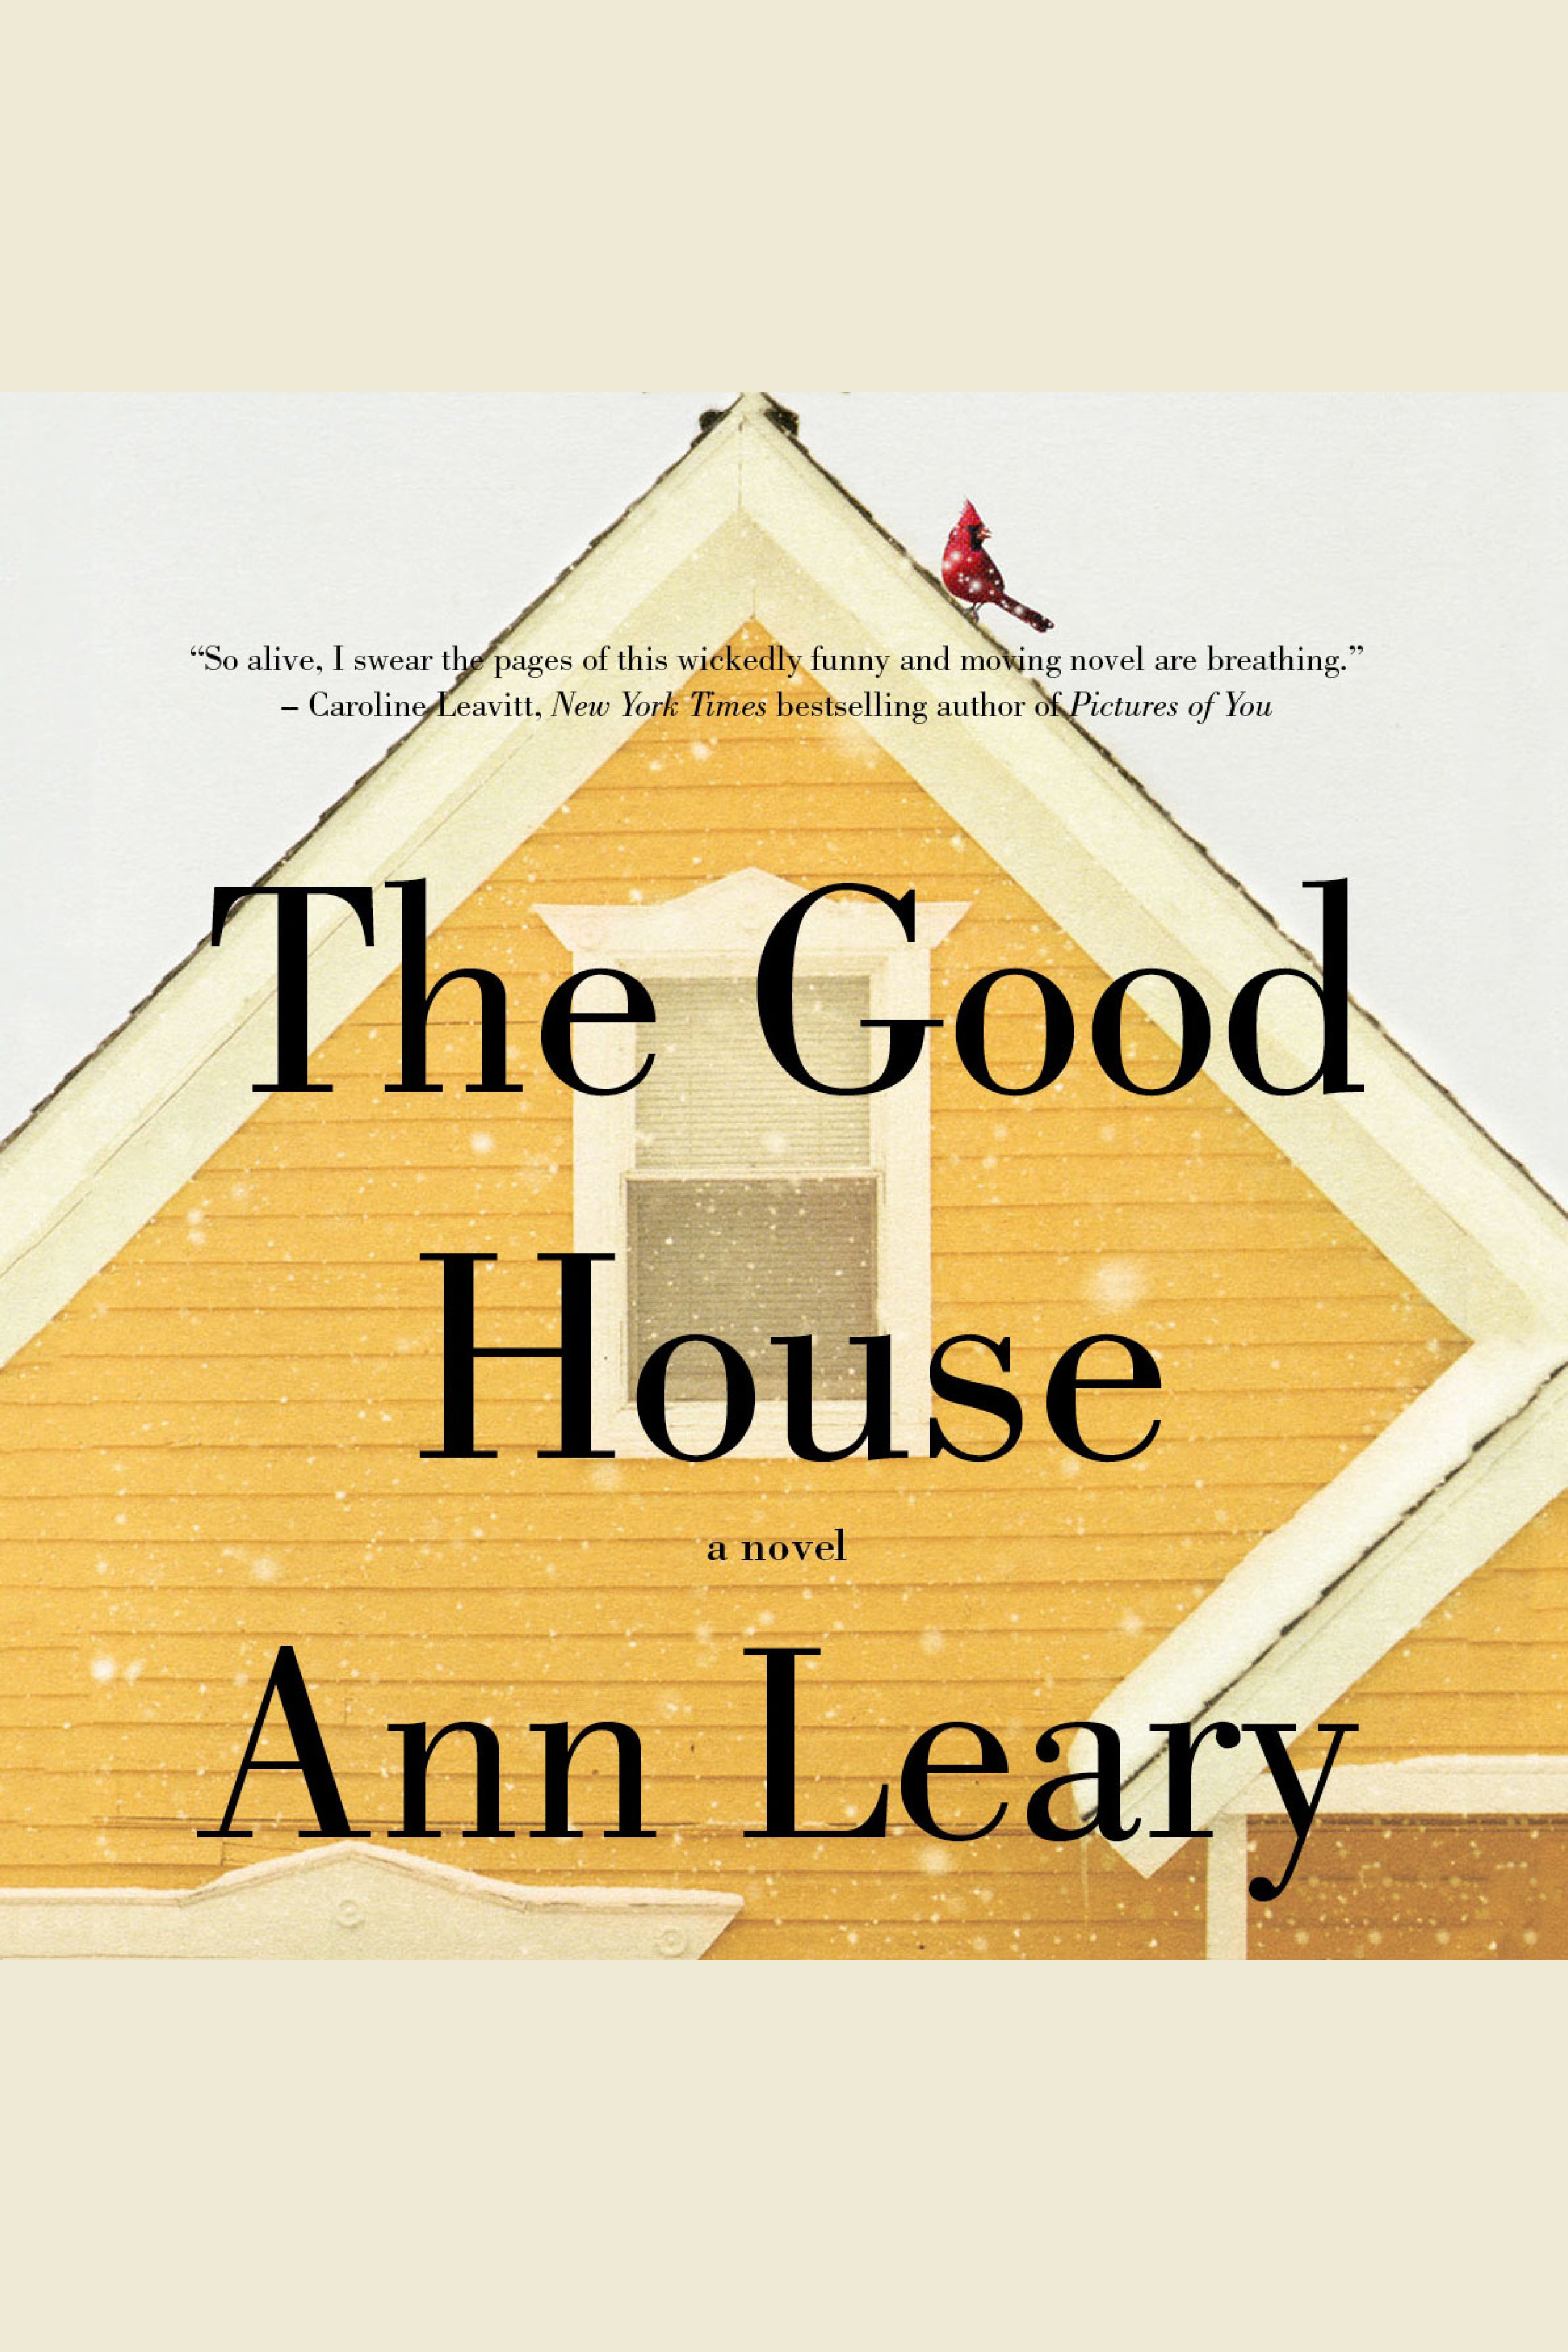 The good house cover image